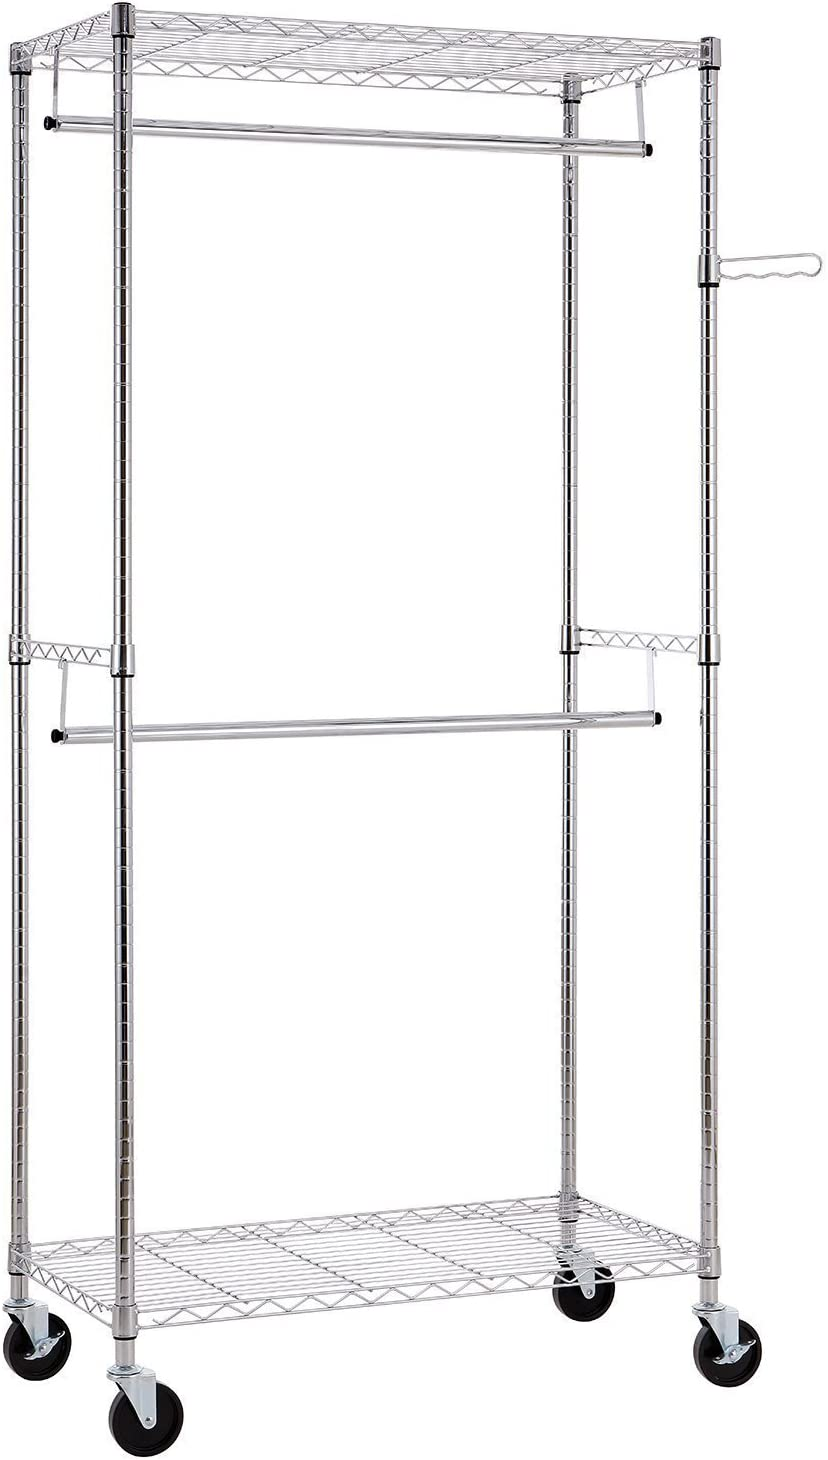 Finnhomy Heavy Duty Rolling Garment Rack Clothes Rack with Double Hanger Rods and Shelves, Portable Closet Organizer with Wheels, 1″ Diameter Thicken Steel Tube Hold Up to 300Lbs, Chrome